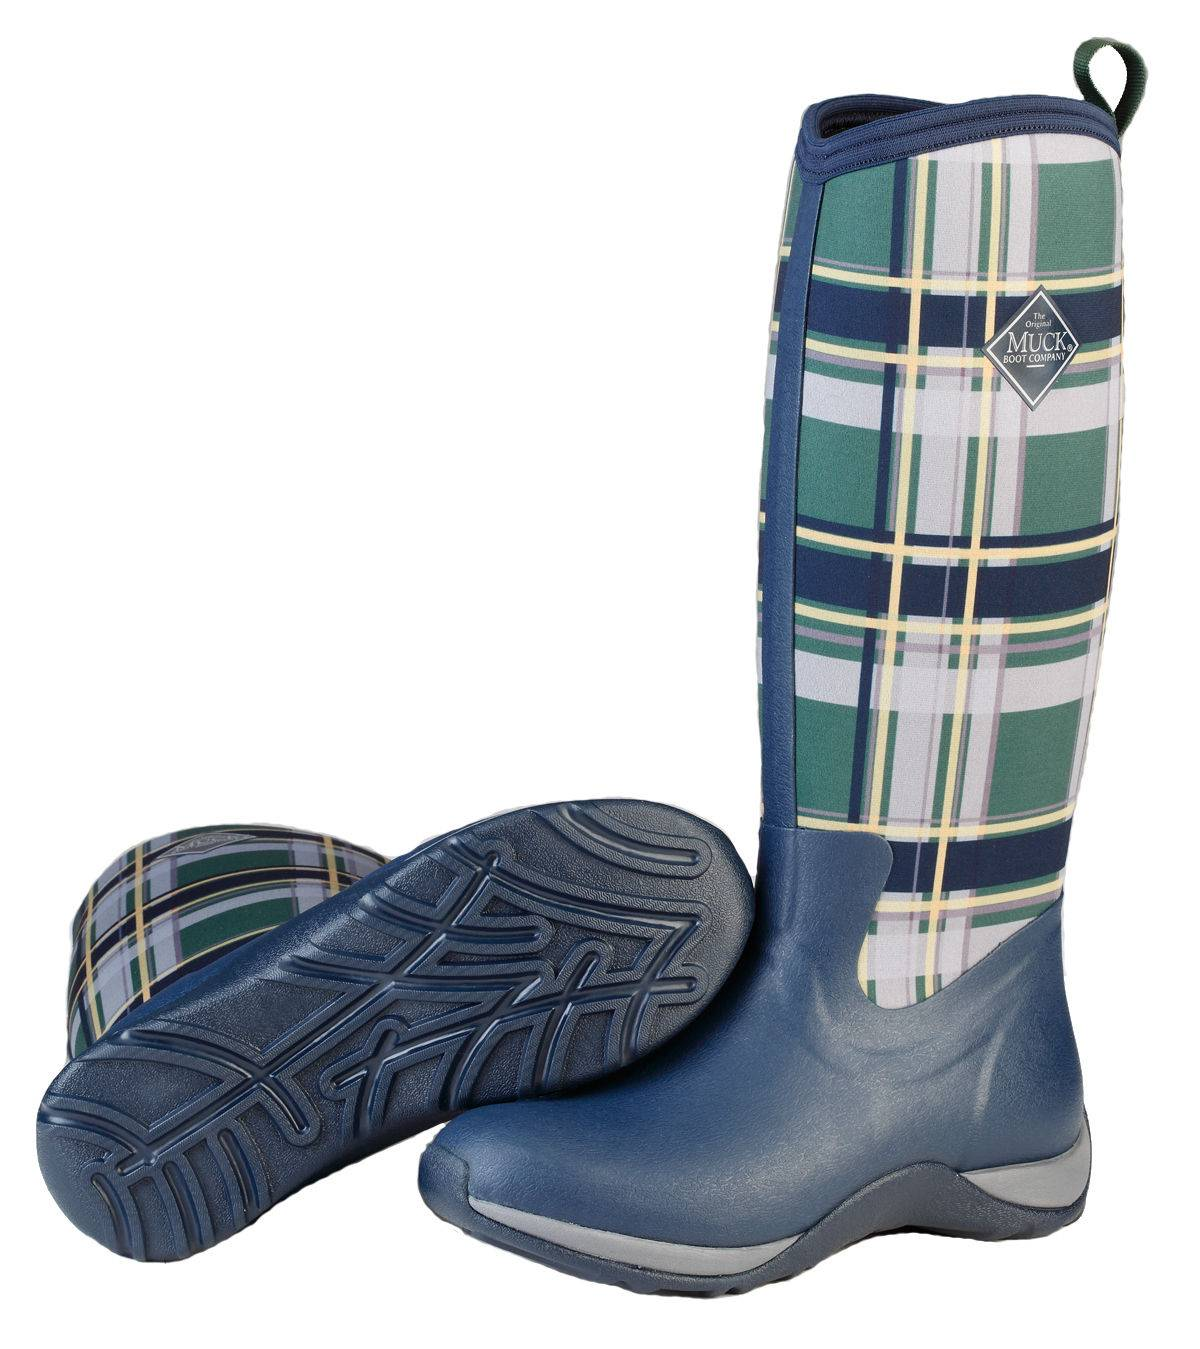 Muck Boots Ladies Arctic Adventure - Navy/Green Plaid